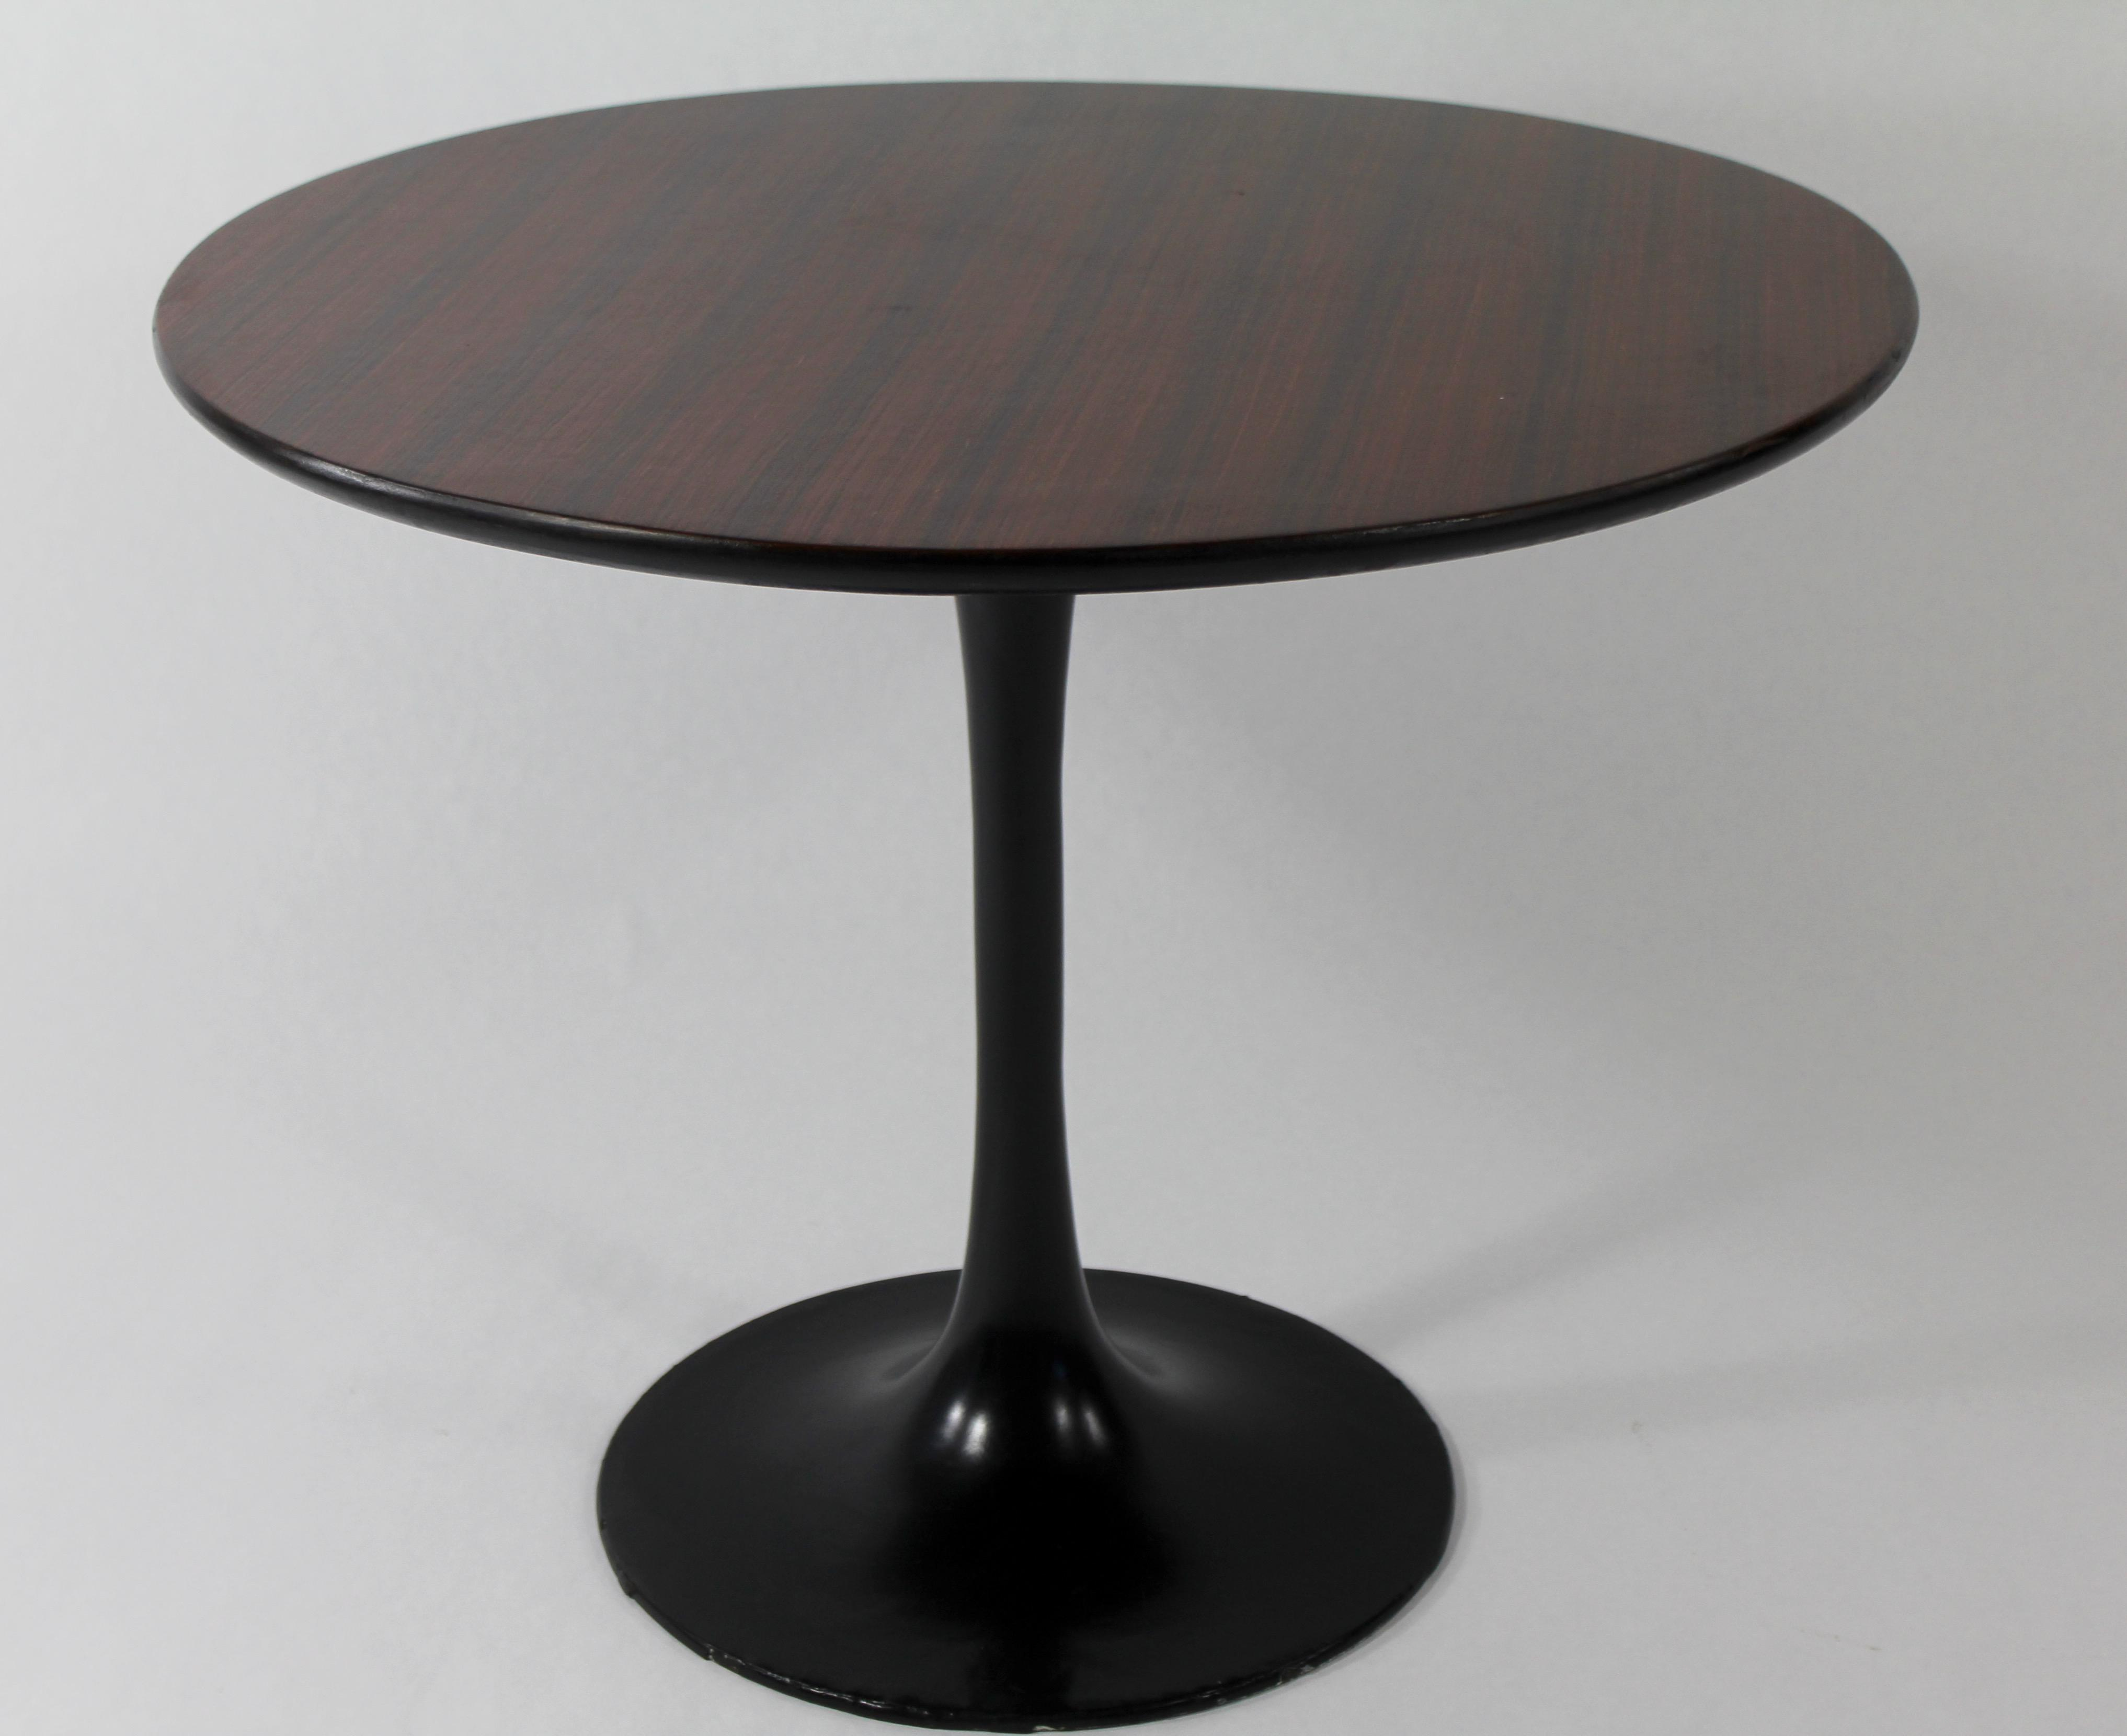 Knoll Style 1960s Rosewood Tulip Table | Chairish